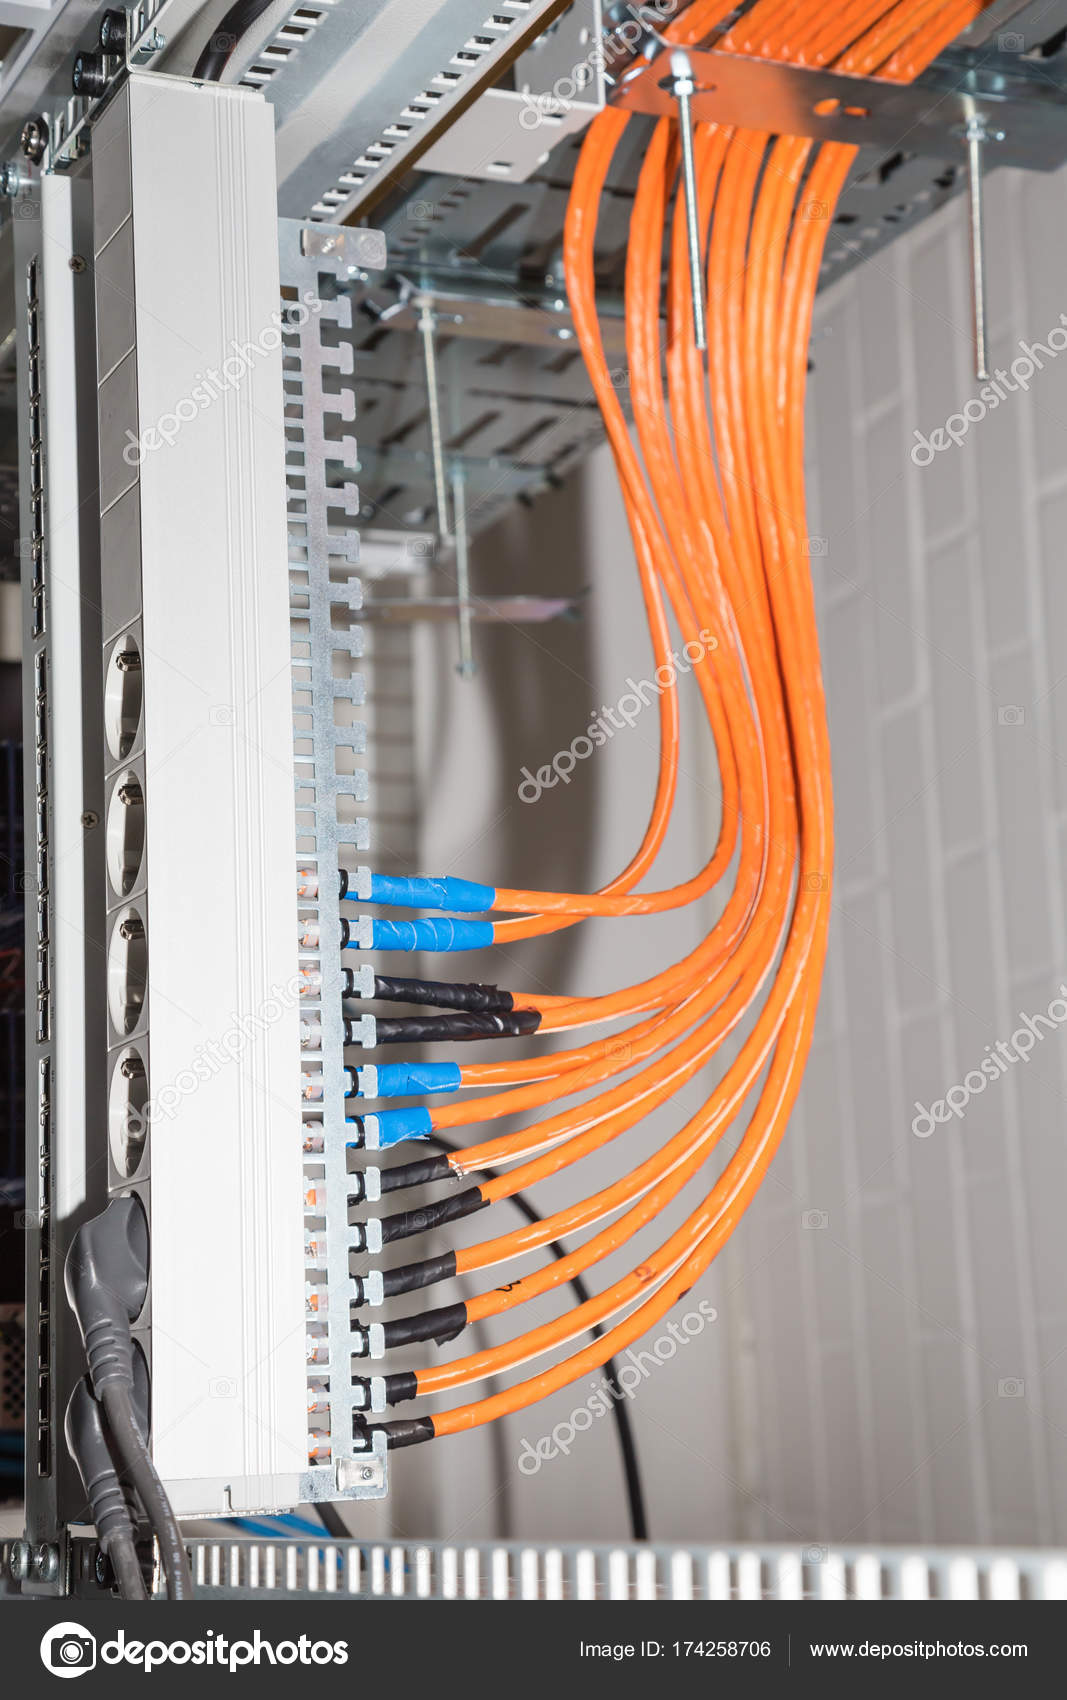 Internet Cable Wiring